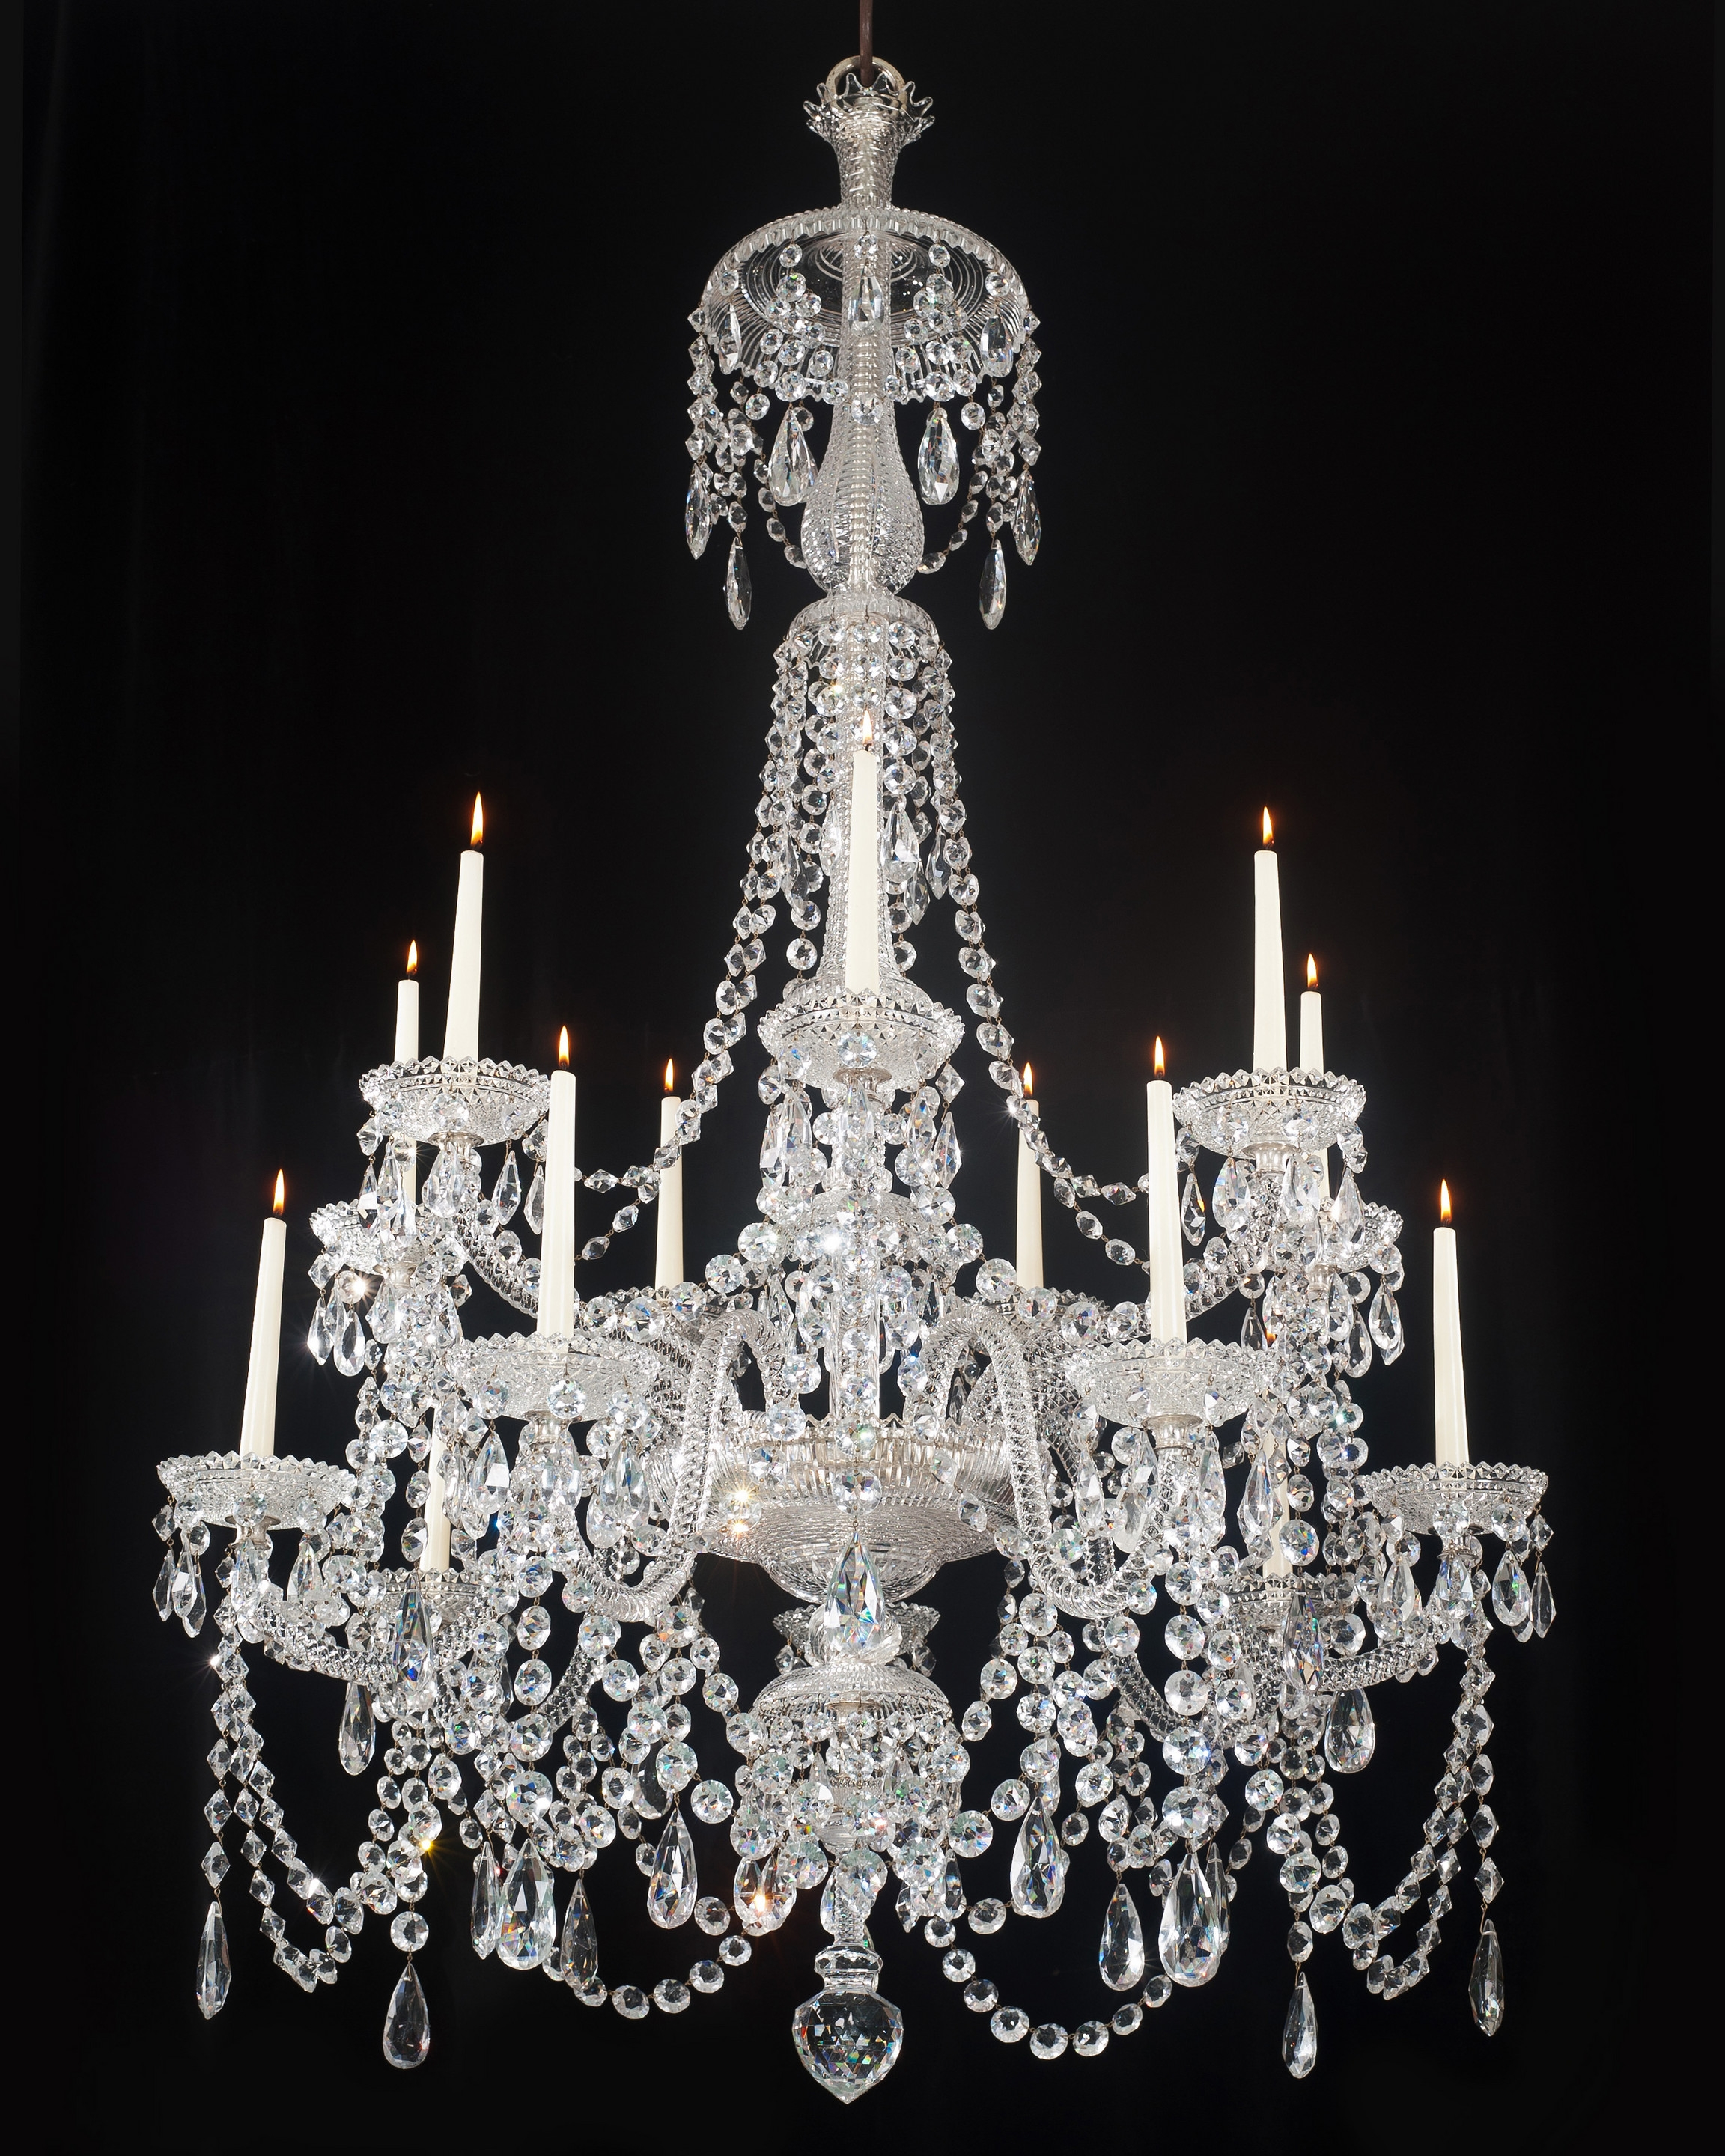 Chandeliers London The Uks Premier Antiques Portal Online With Regard To Antique Chandeliers (#9 of 12)